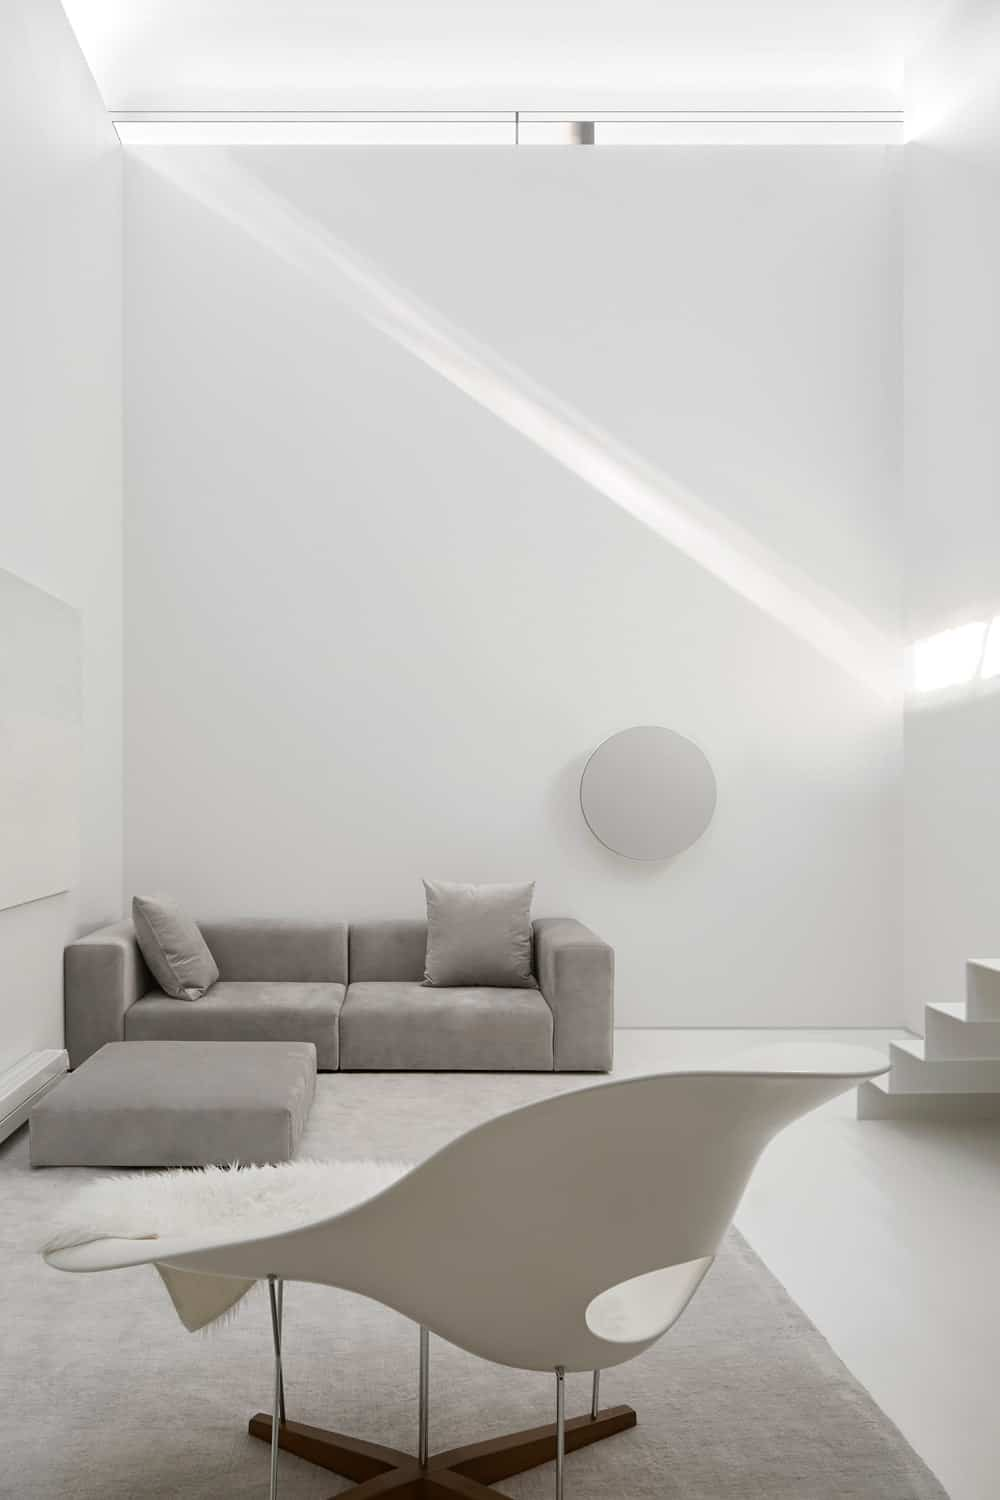 This is the other side of the lounge chair. It has a large gray L-shaped sectional sofa against the white wall by the foot of the modern stairs.